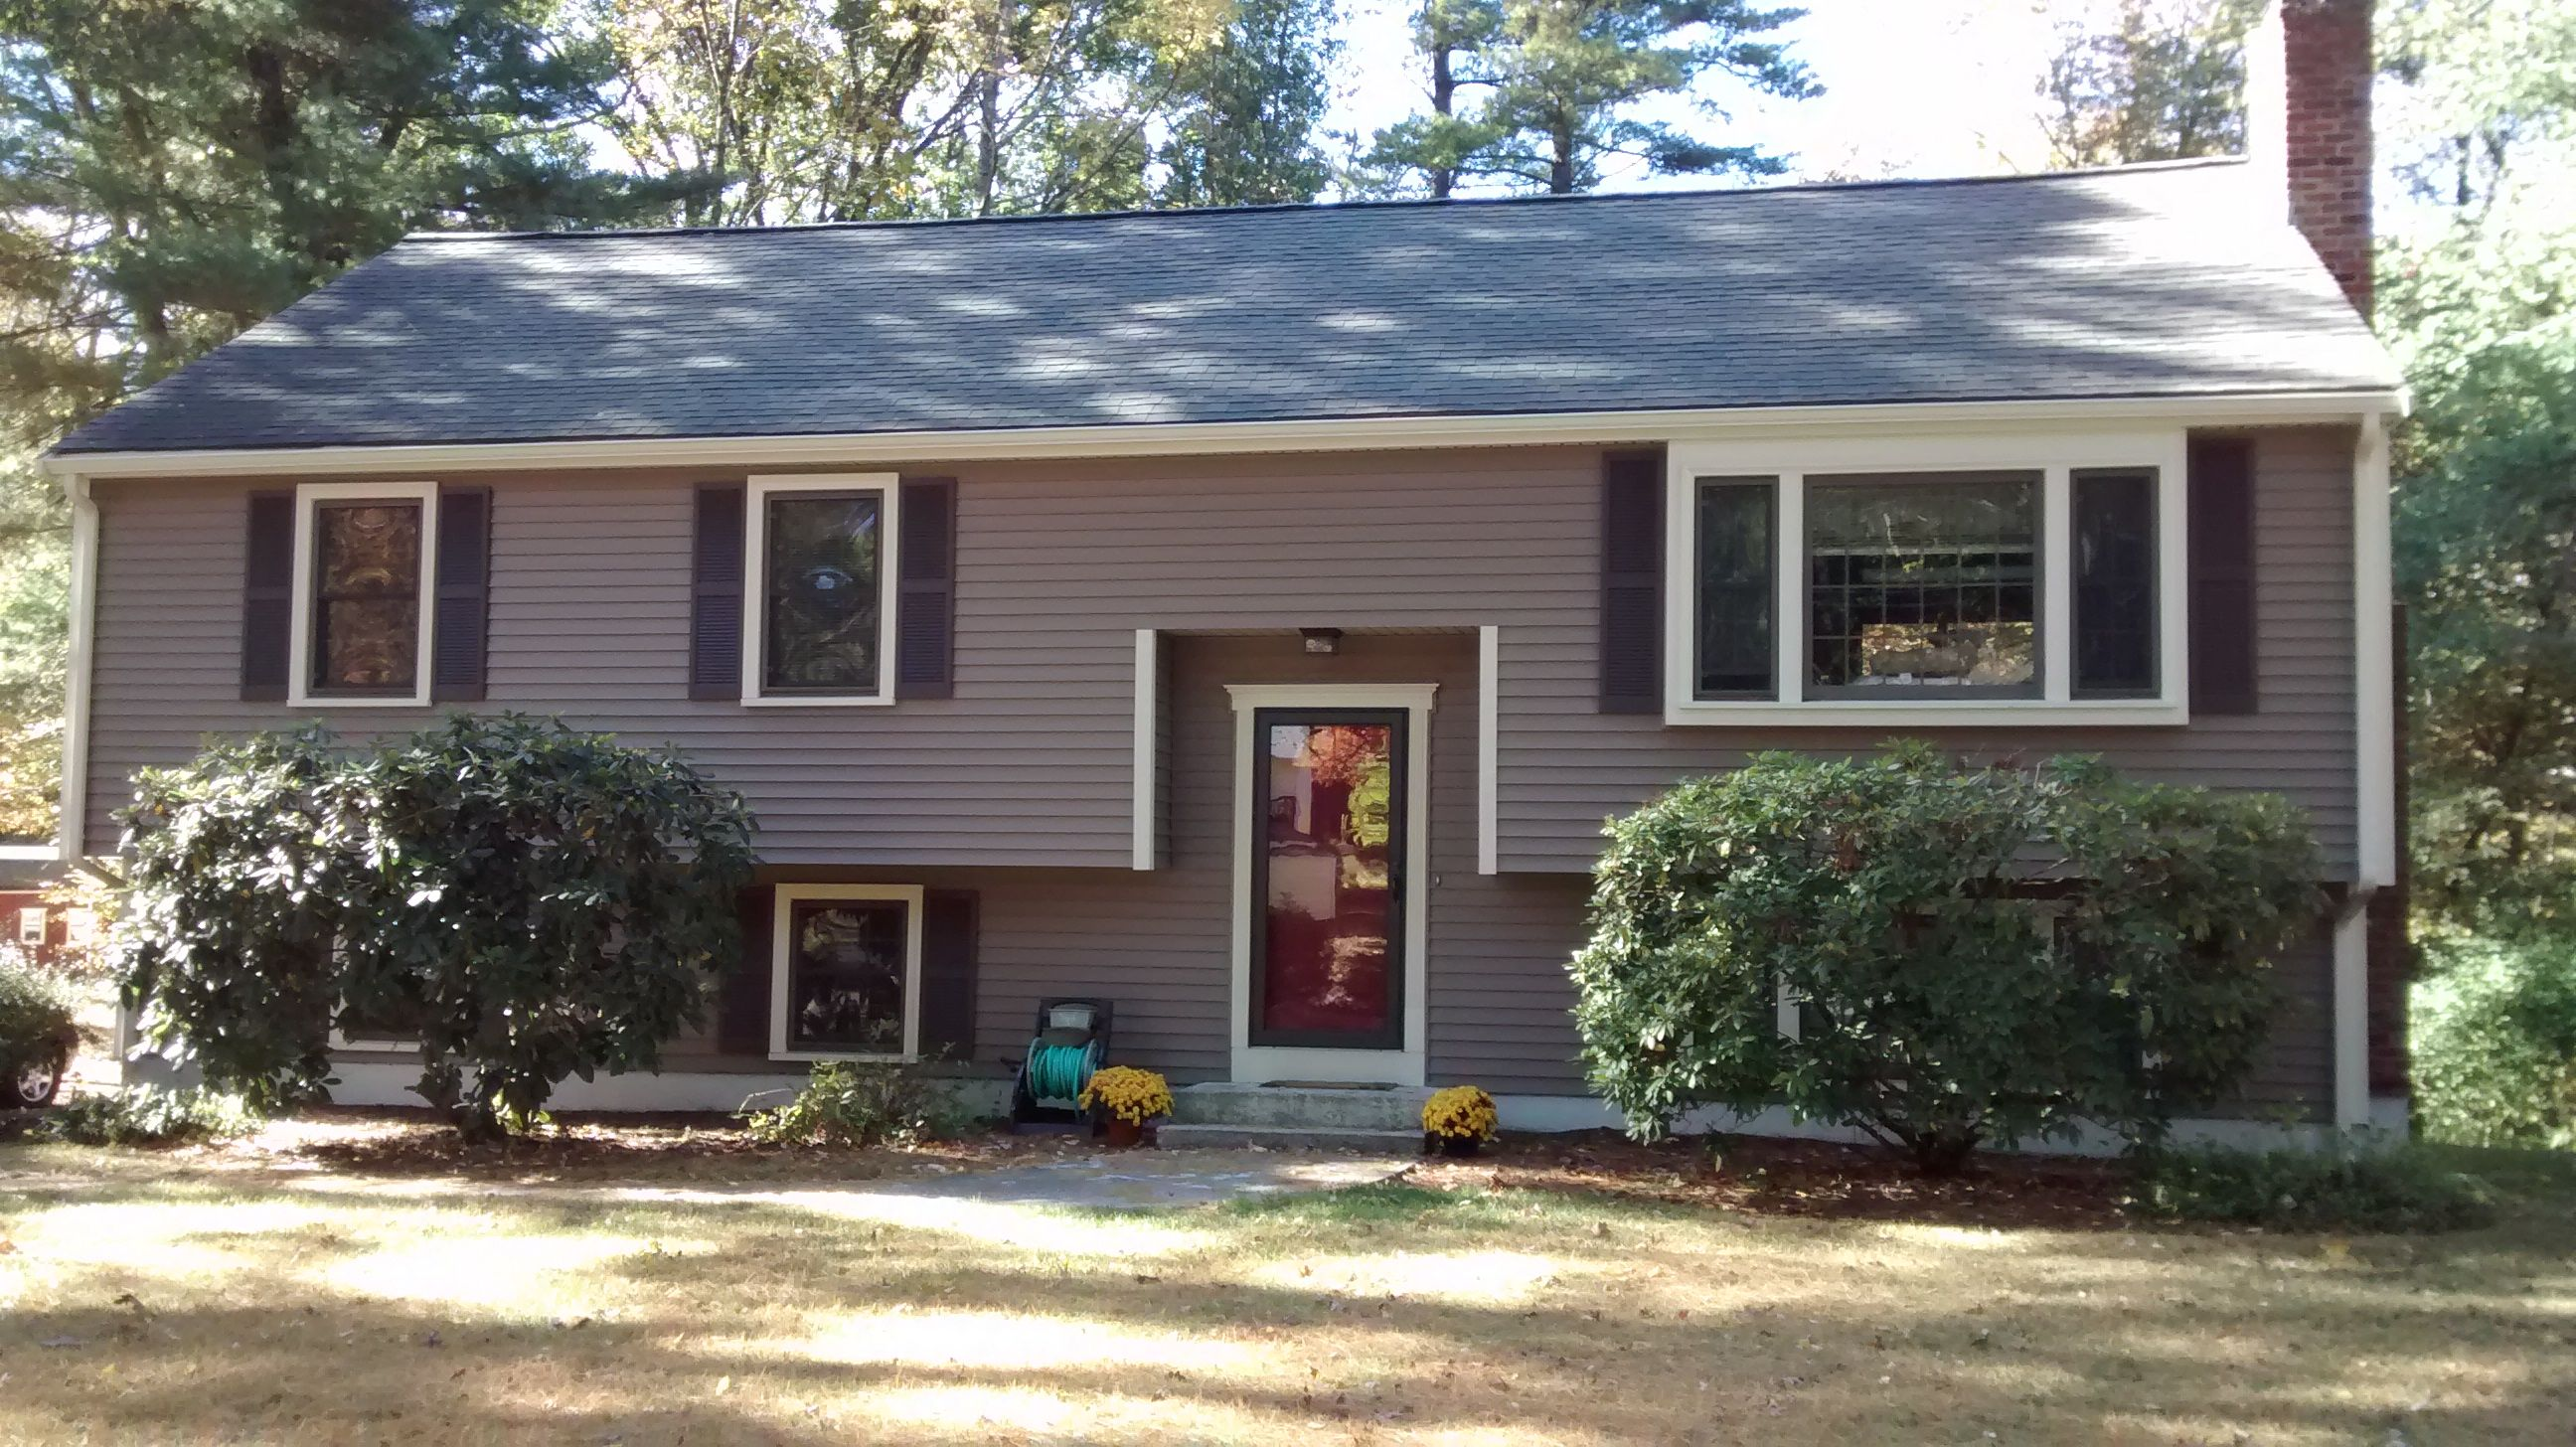 Mastic Carvedwood Vinyl Siding In Rugged Canyon With